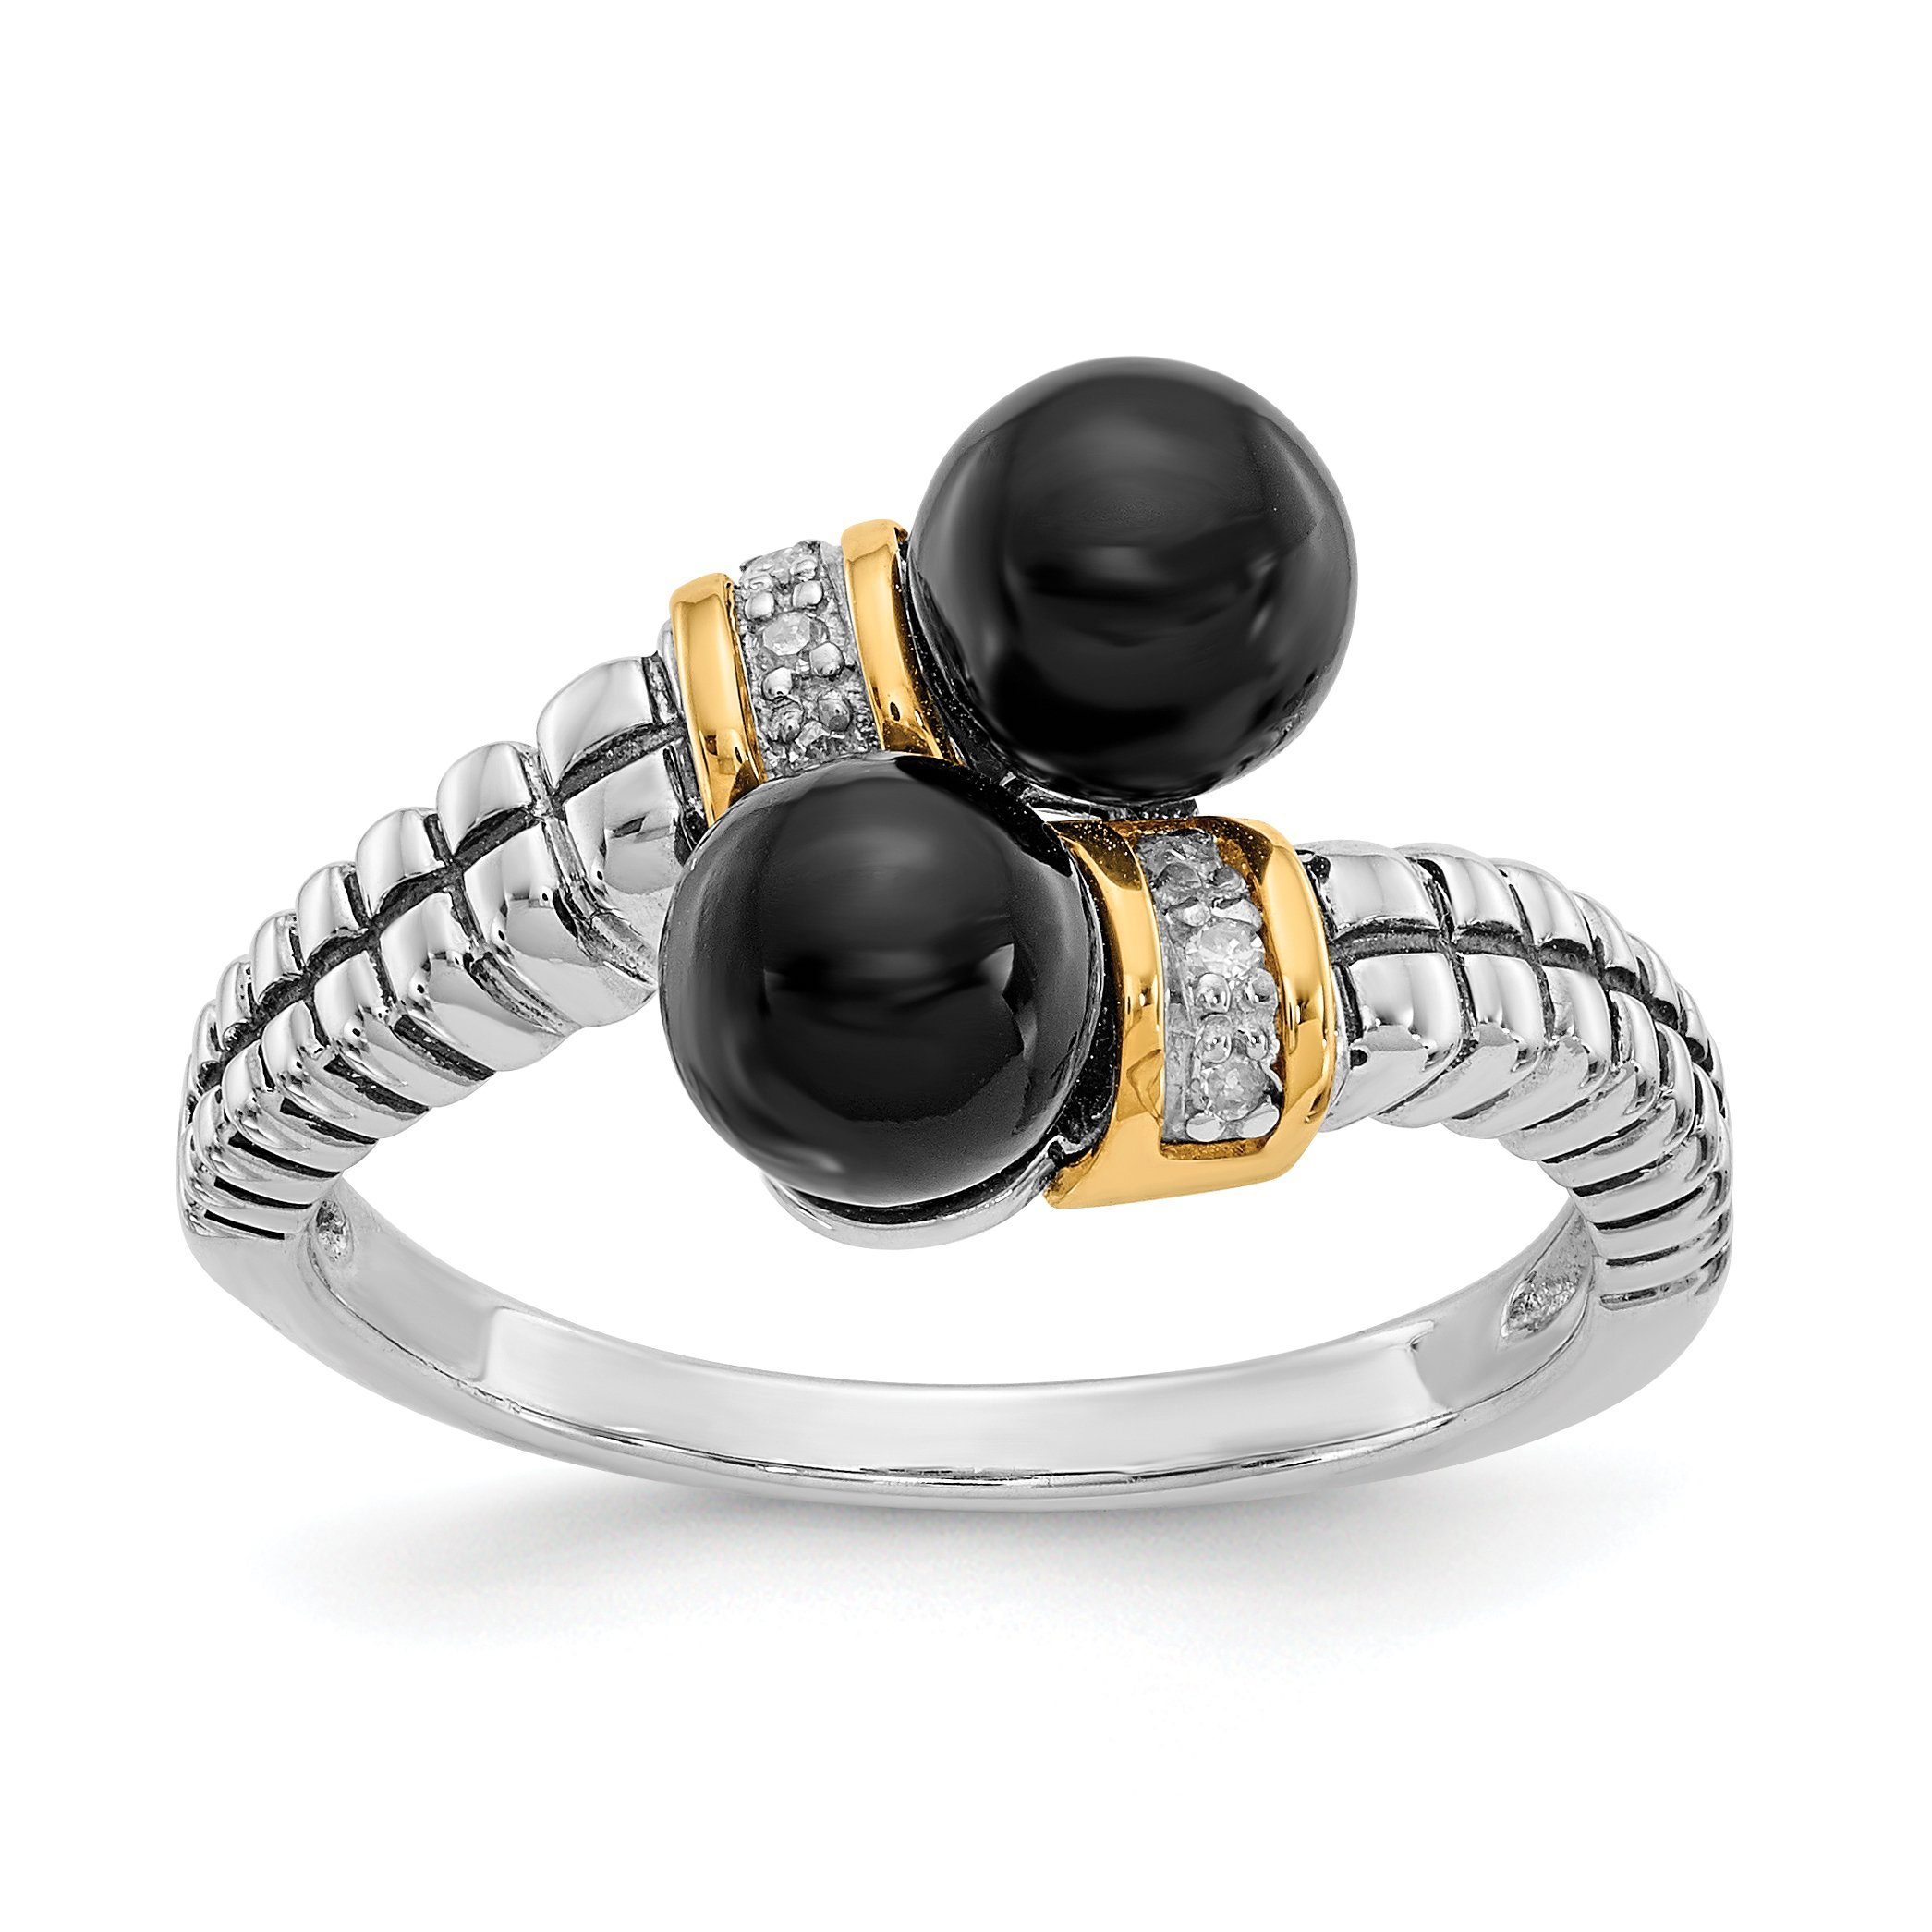 ICE CARATS 925 Sterling Silver 14k Black Onyx Diamond Band Ring Size 7.00 Natural Stone Fine Jewelry Gift Set For Women Heart